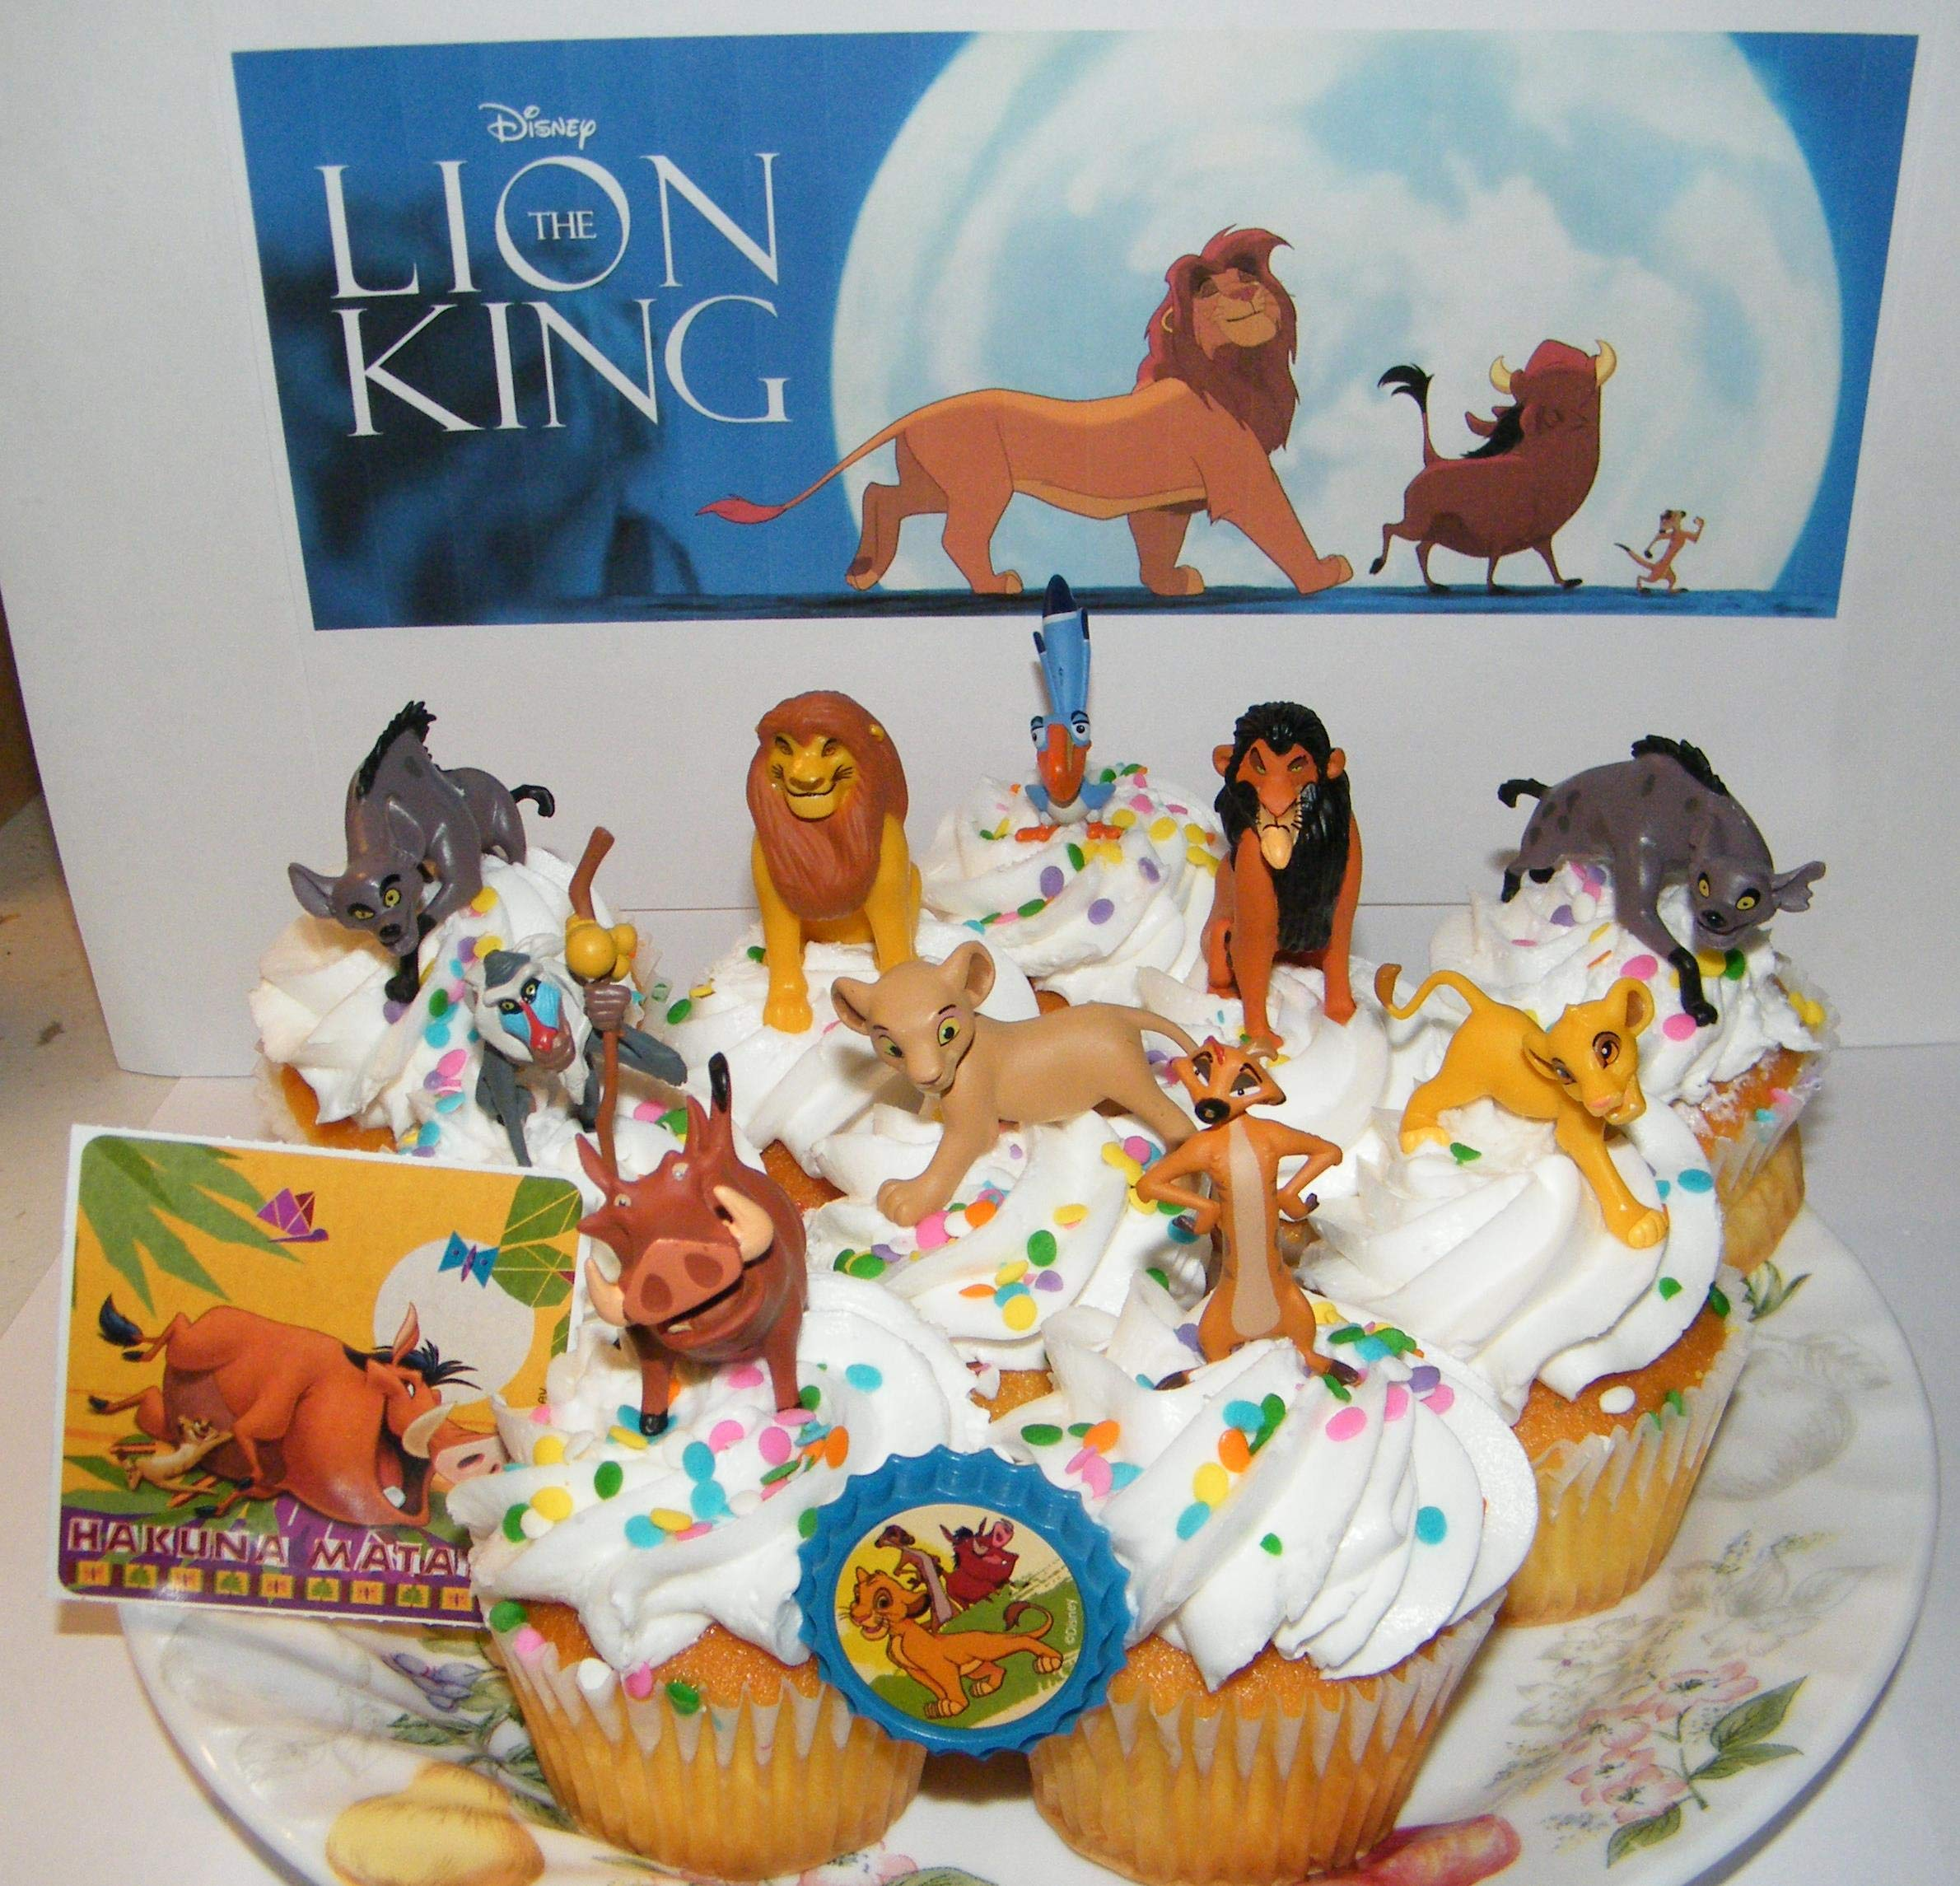 The Lion King Movie Deluxe Cake Toppers Cupcake Decorations 12 Set with 10 Figures, Movie Sticker and LKRing Featuring Simba, Scar, Hyenas and Much More! by Party Time